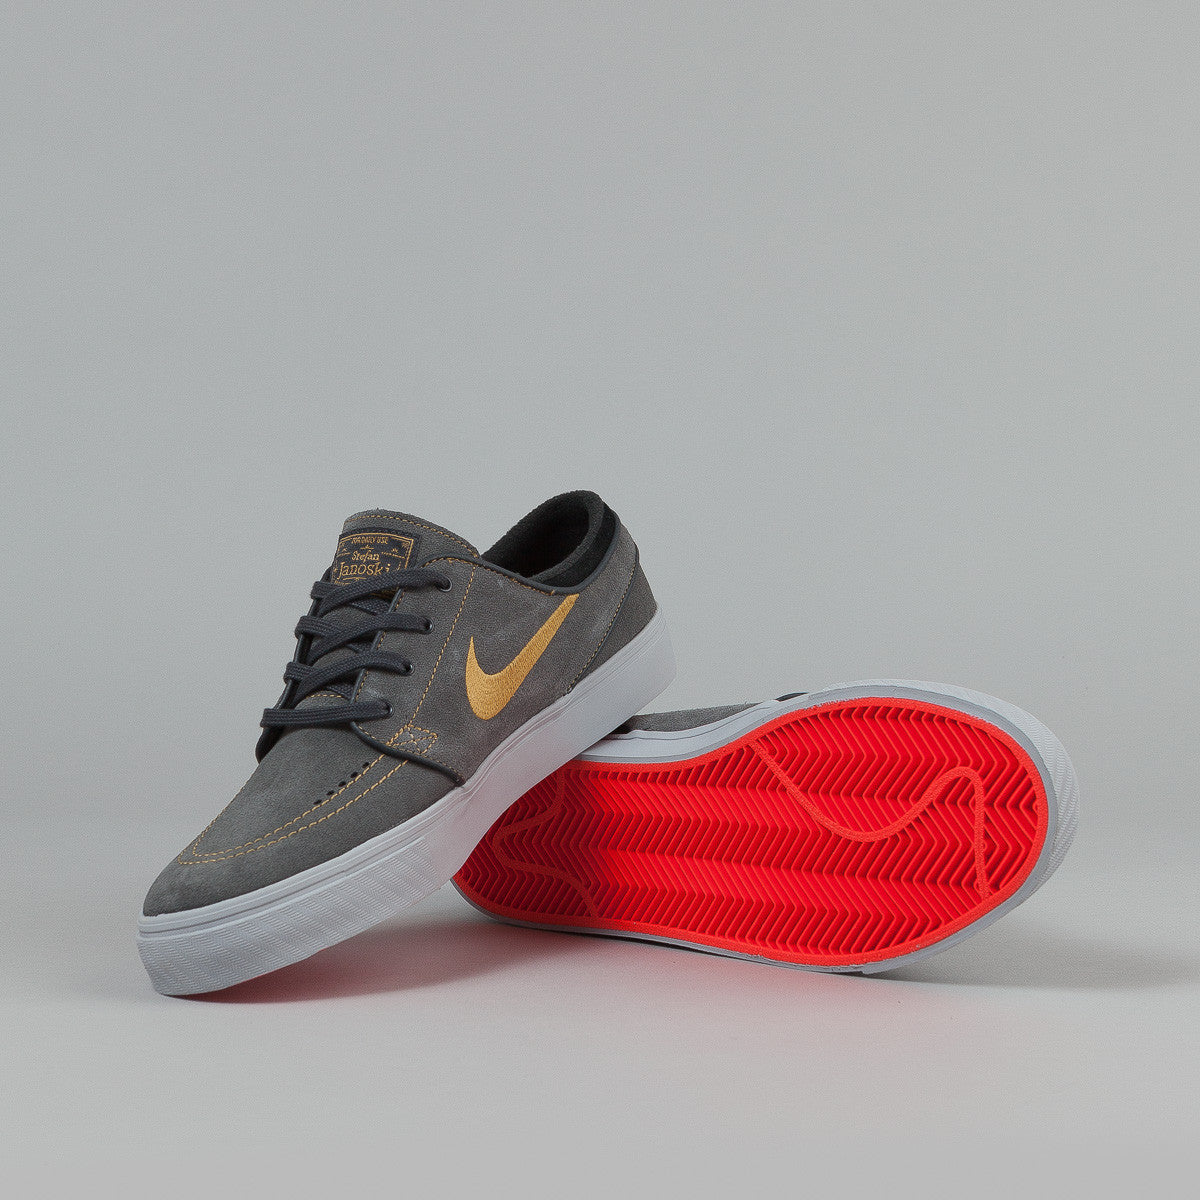 Nike SB Stefan Janoski Shoes - Anthracite / Metallic Gold - Black - Bright Crimson